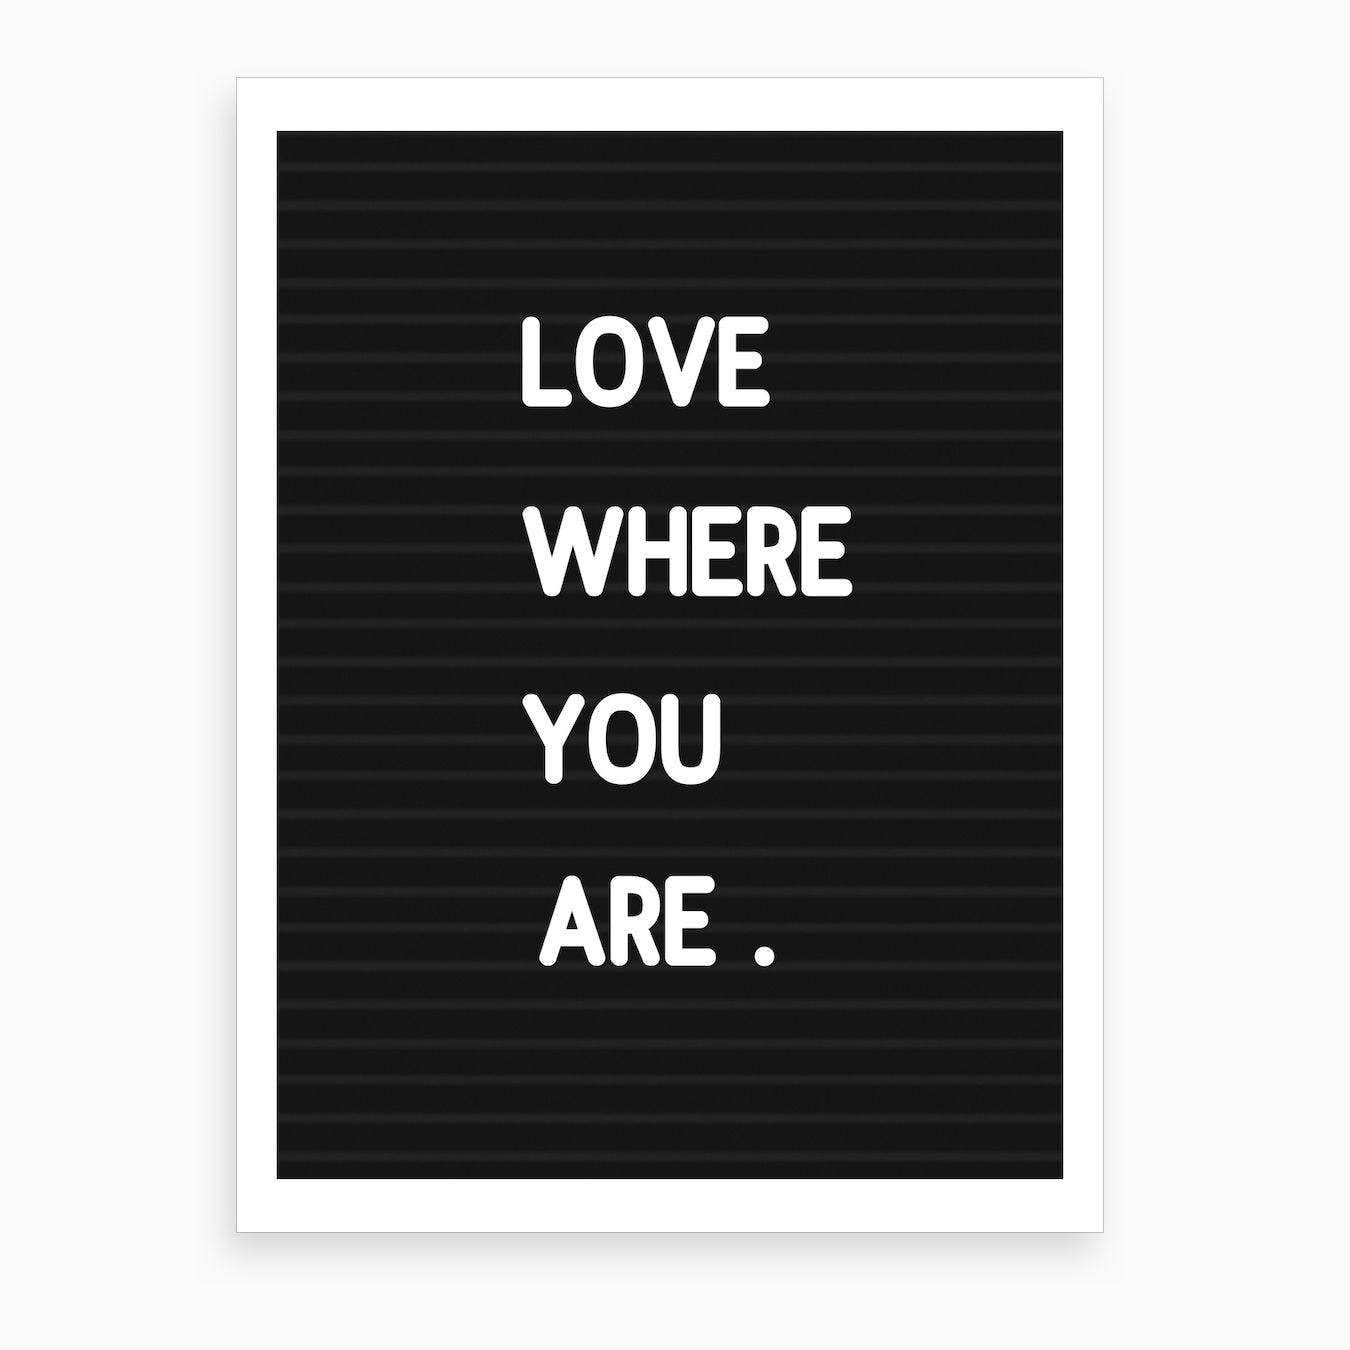 Love Where You Are   Letterboard Style Art Print